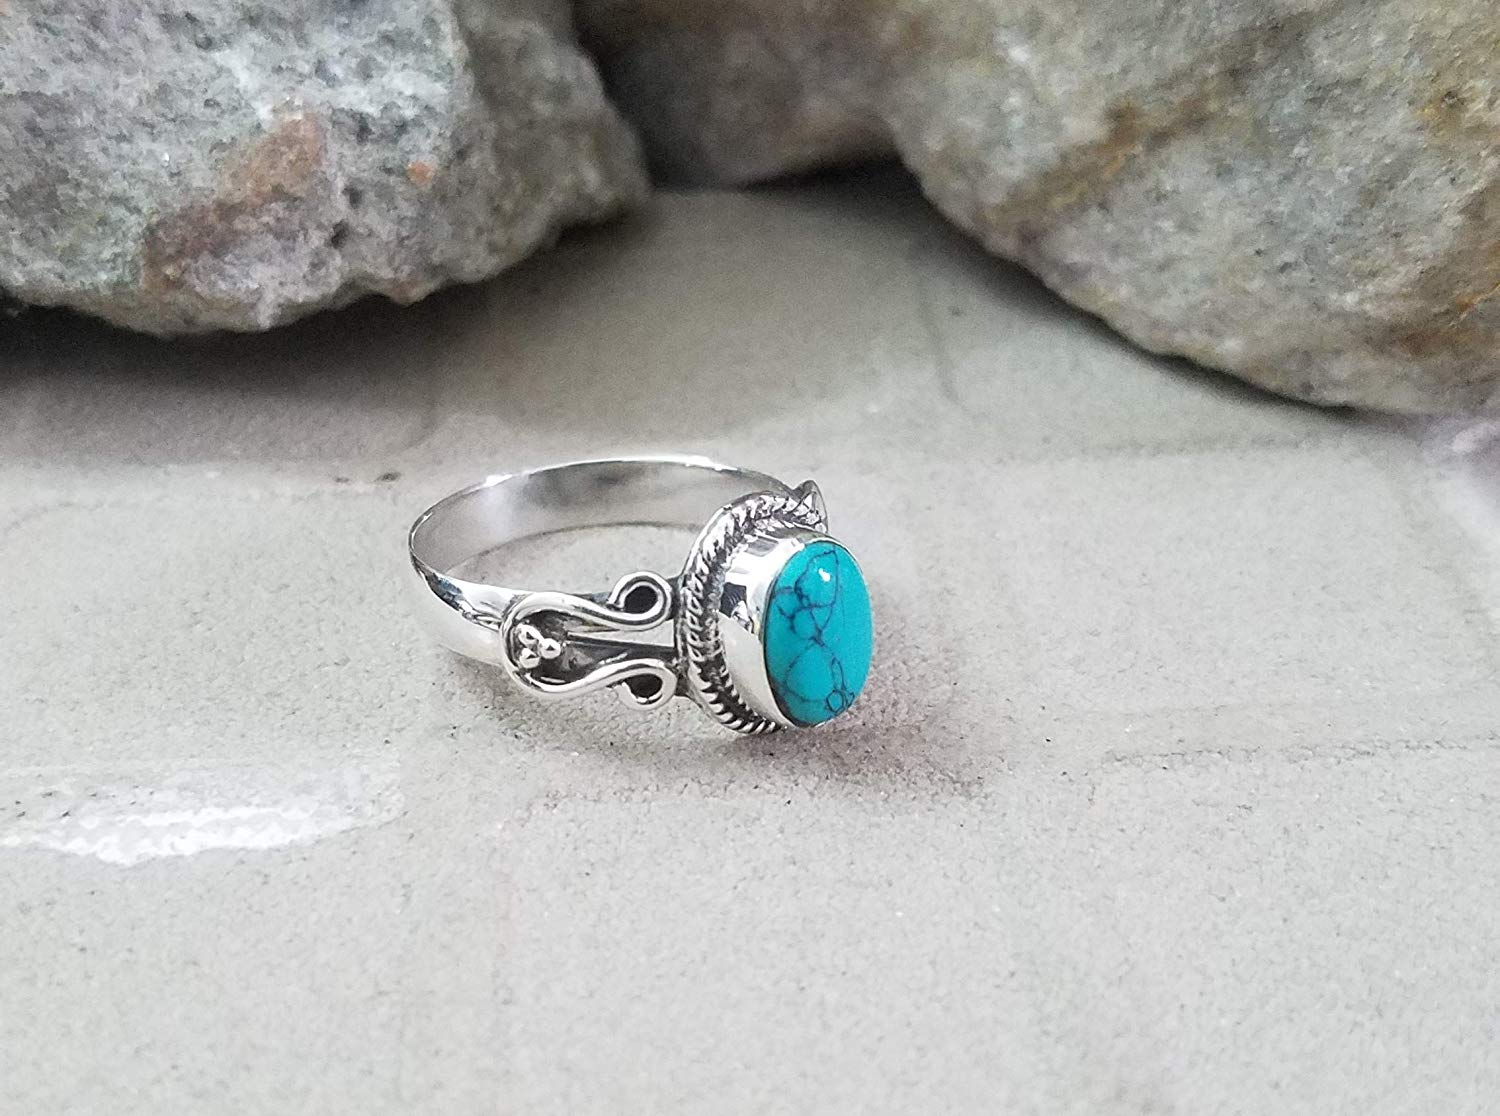 Turquoise Ring.925 Sterling Silver.Excellent Stone Ring.Royal & Charm Ring.Handmade Ethnic Gypsy Ring.Casual Ring.Elegant Ring.Classic Modern Design.Romantic Statement Ring.Bohemian Tribal